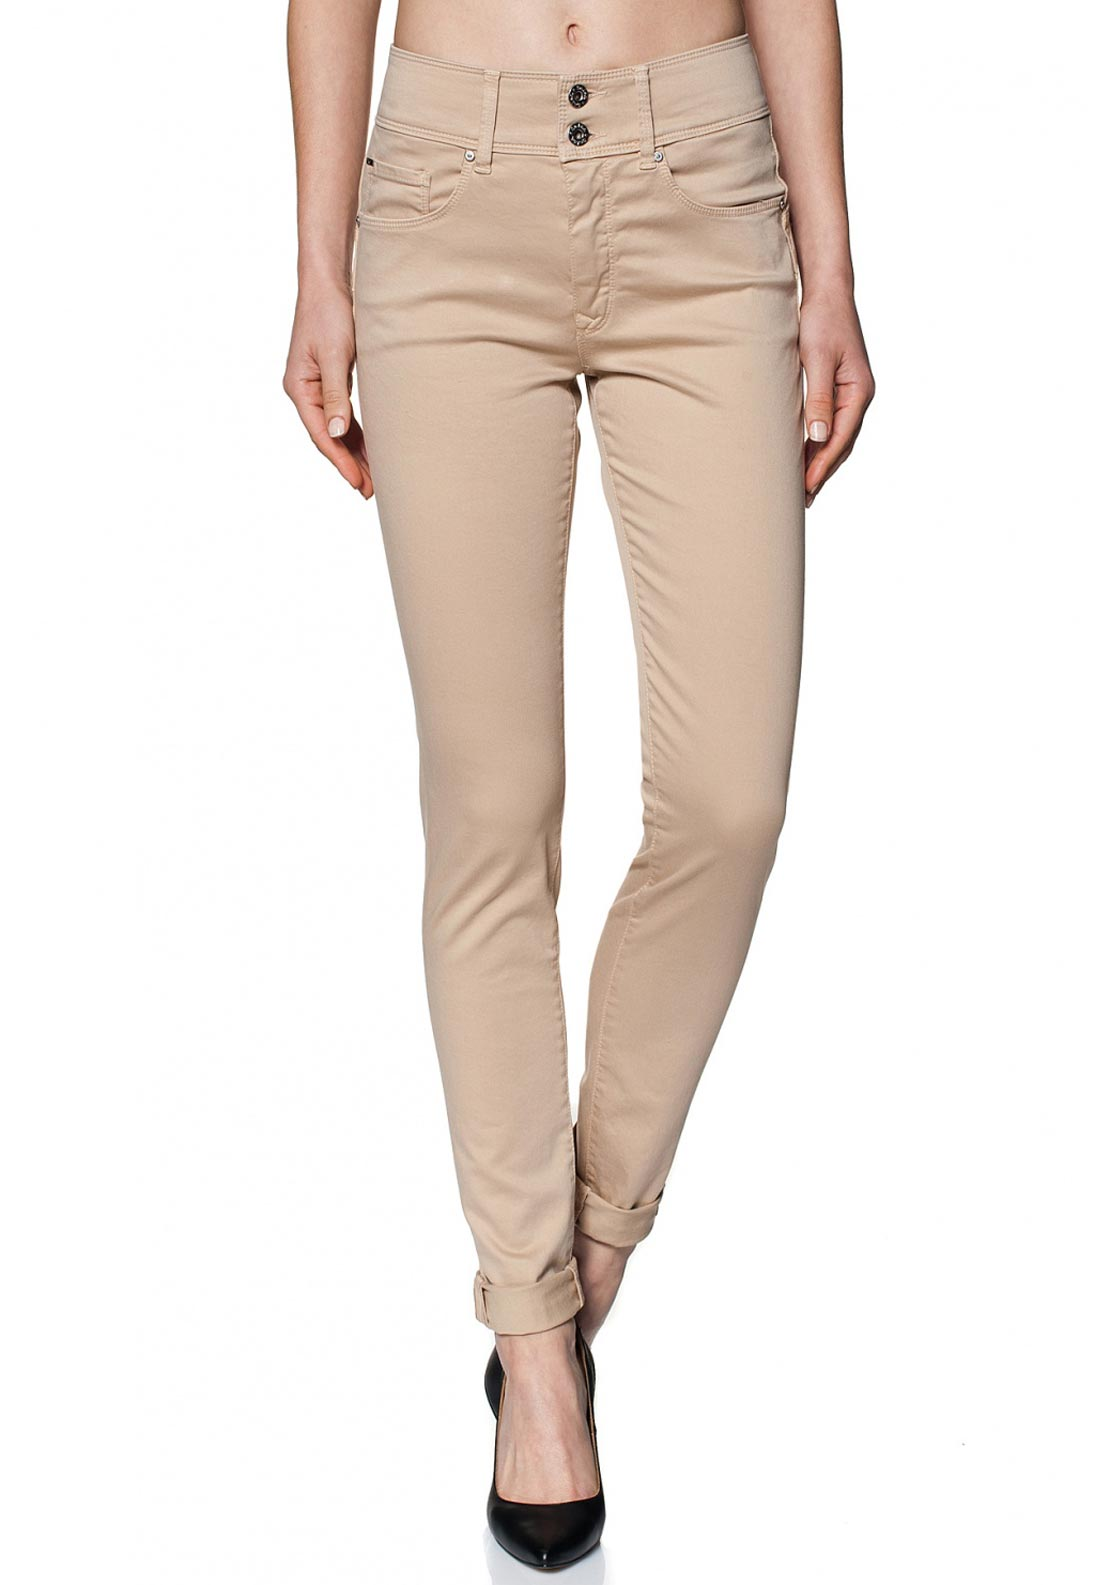 Salsa Secret Push In High Waist Jeans, Beige